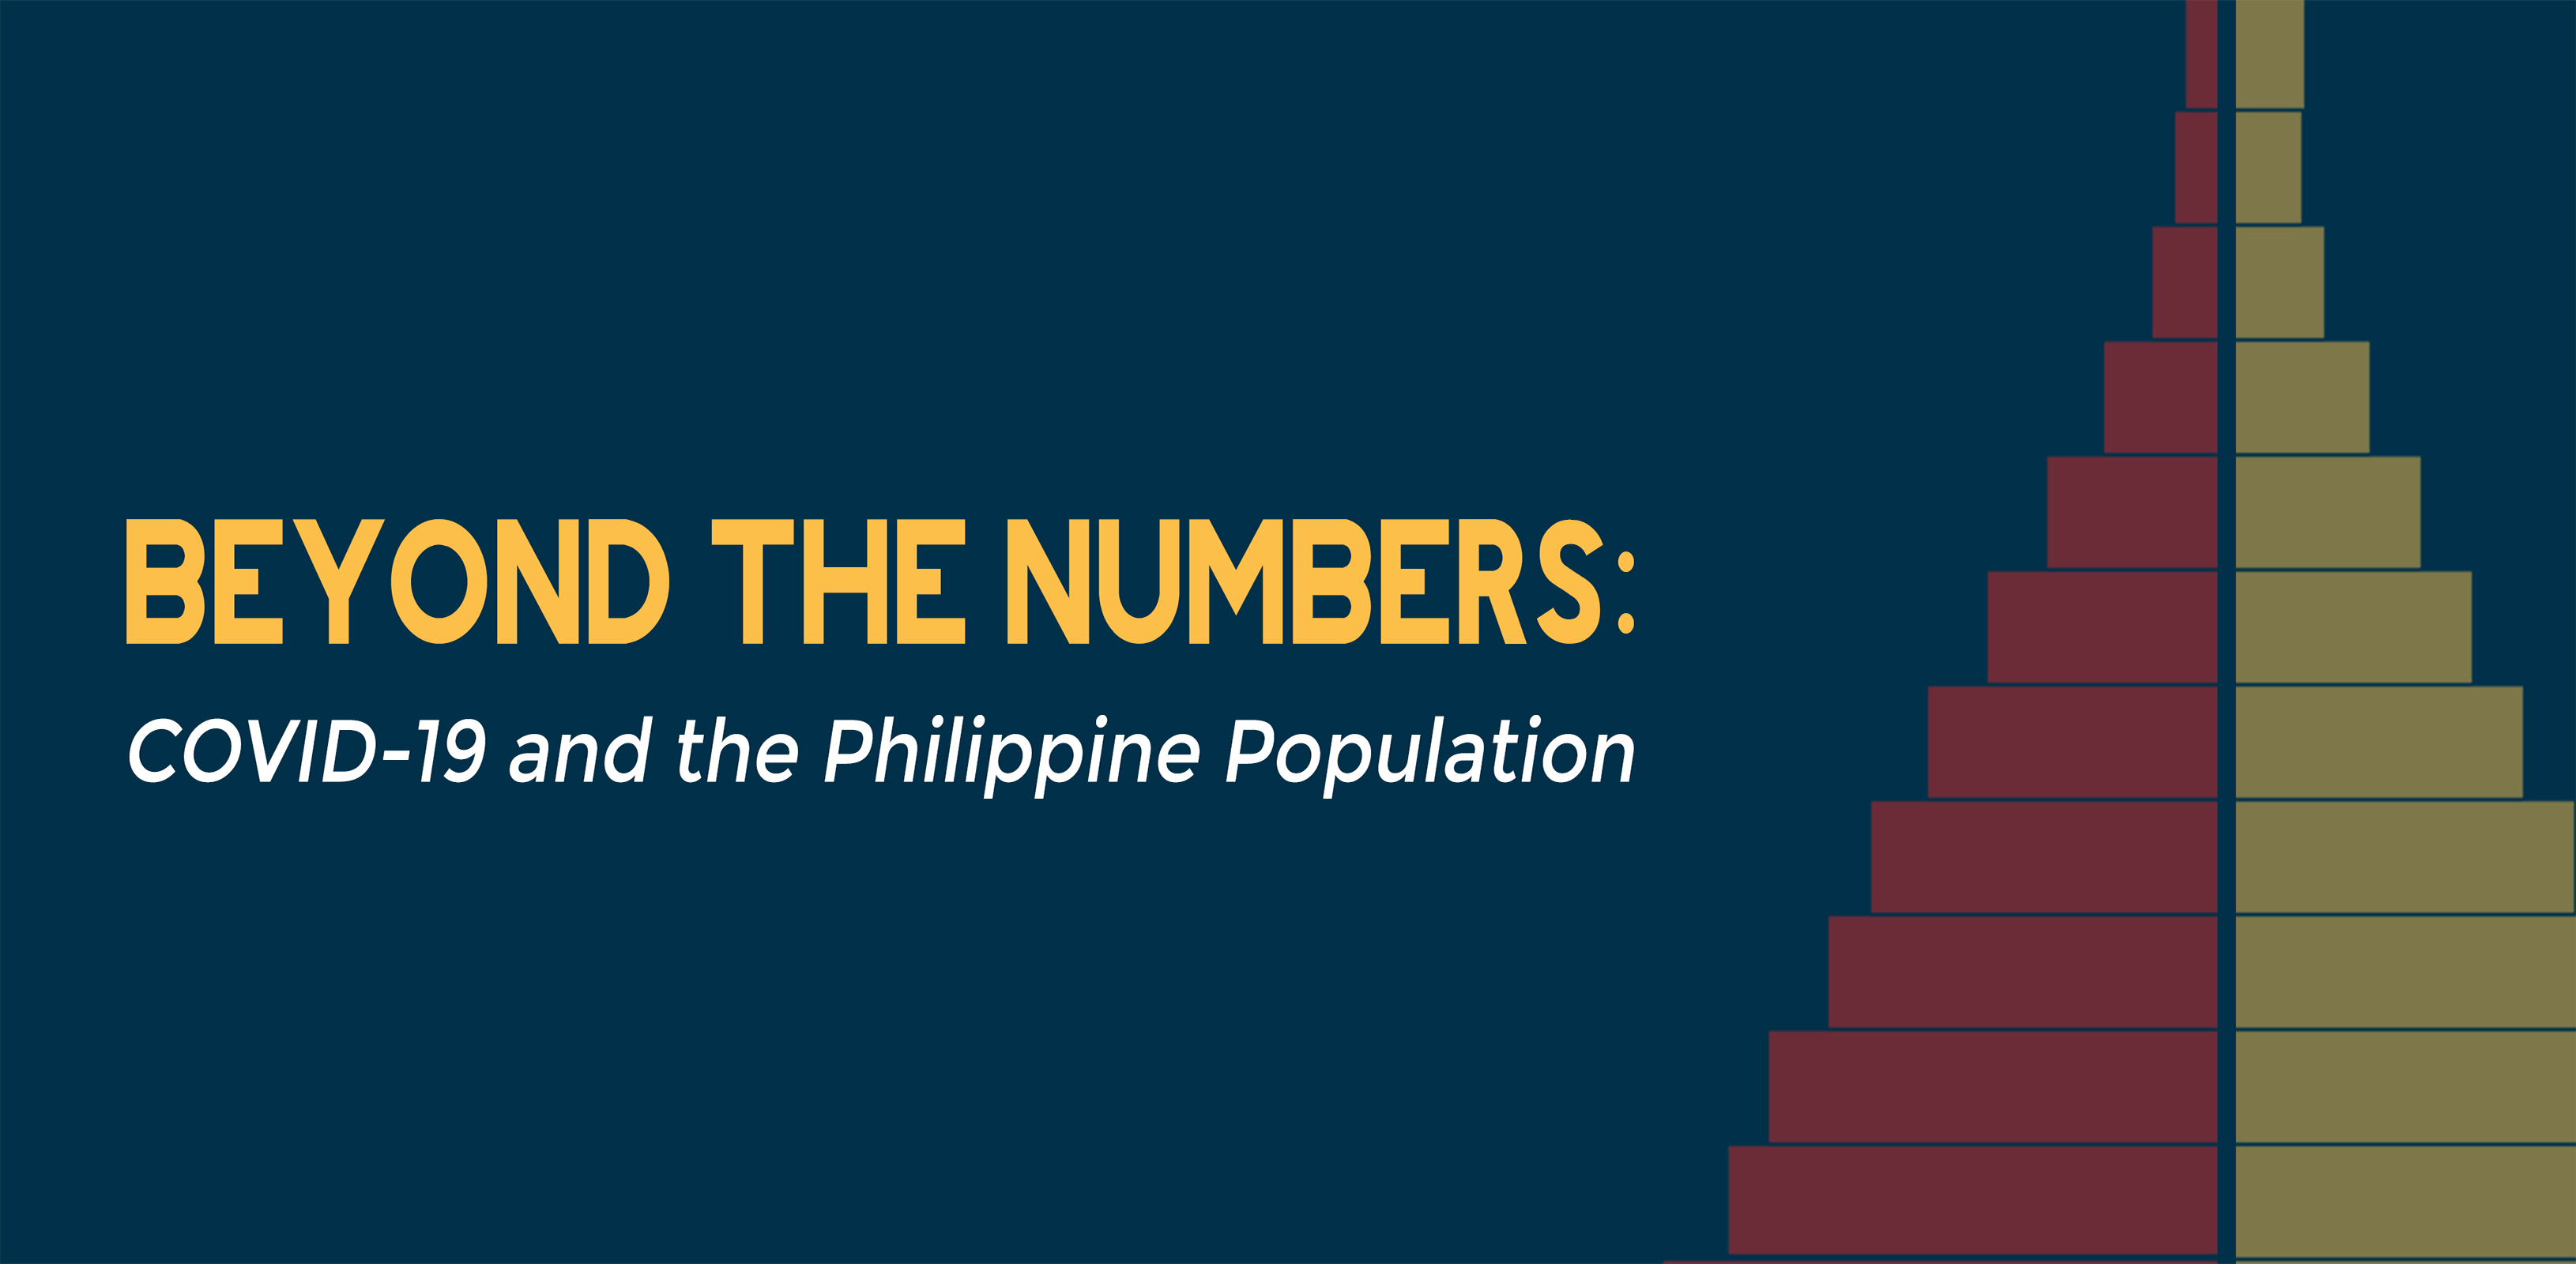 Beyond the Numbers: COVID-19 and the Philippine Population